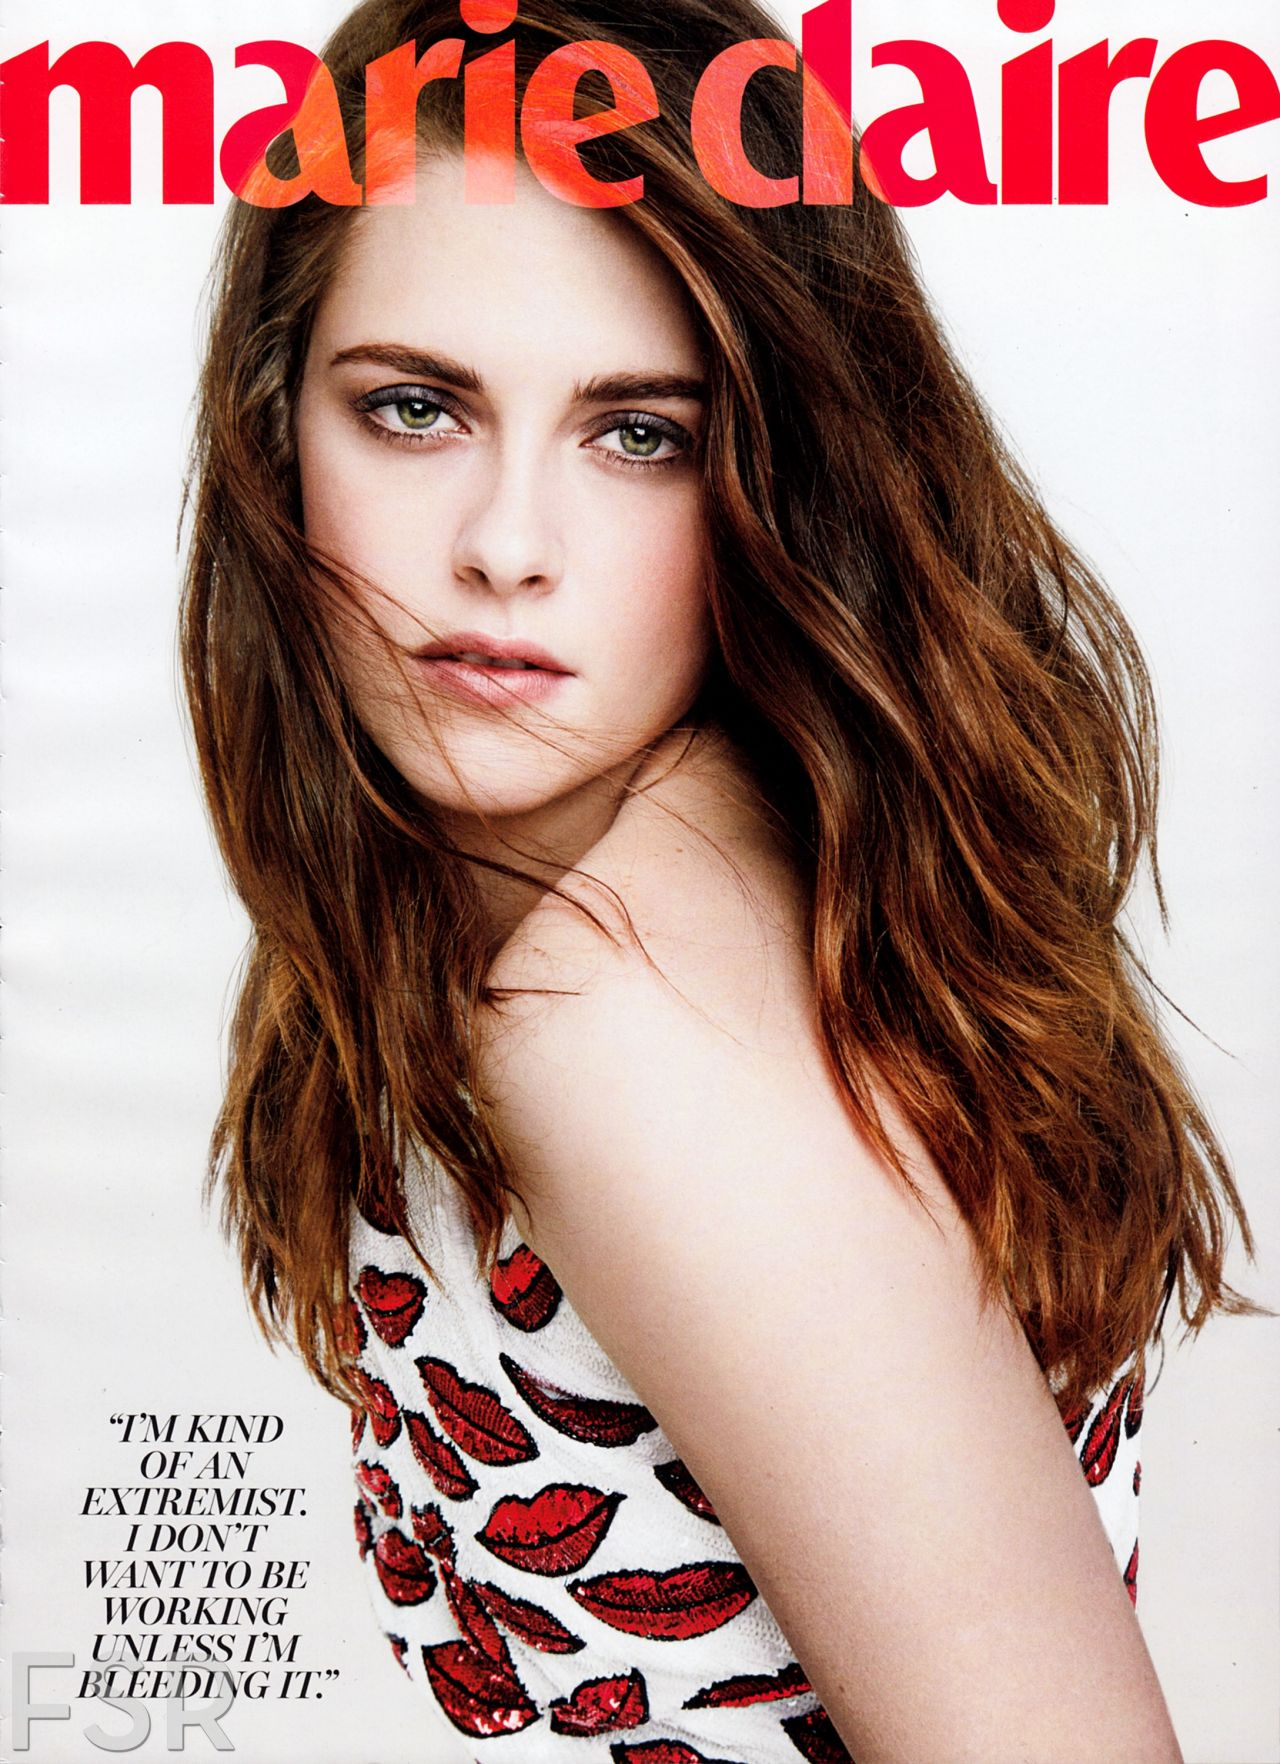 Kristen Stewart - MARIE CLAIRE Magazine - March 2014 Issue